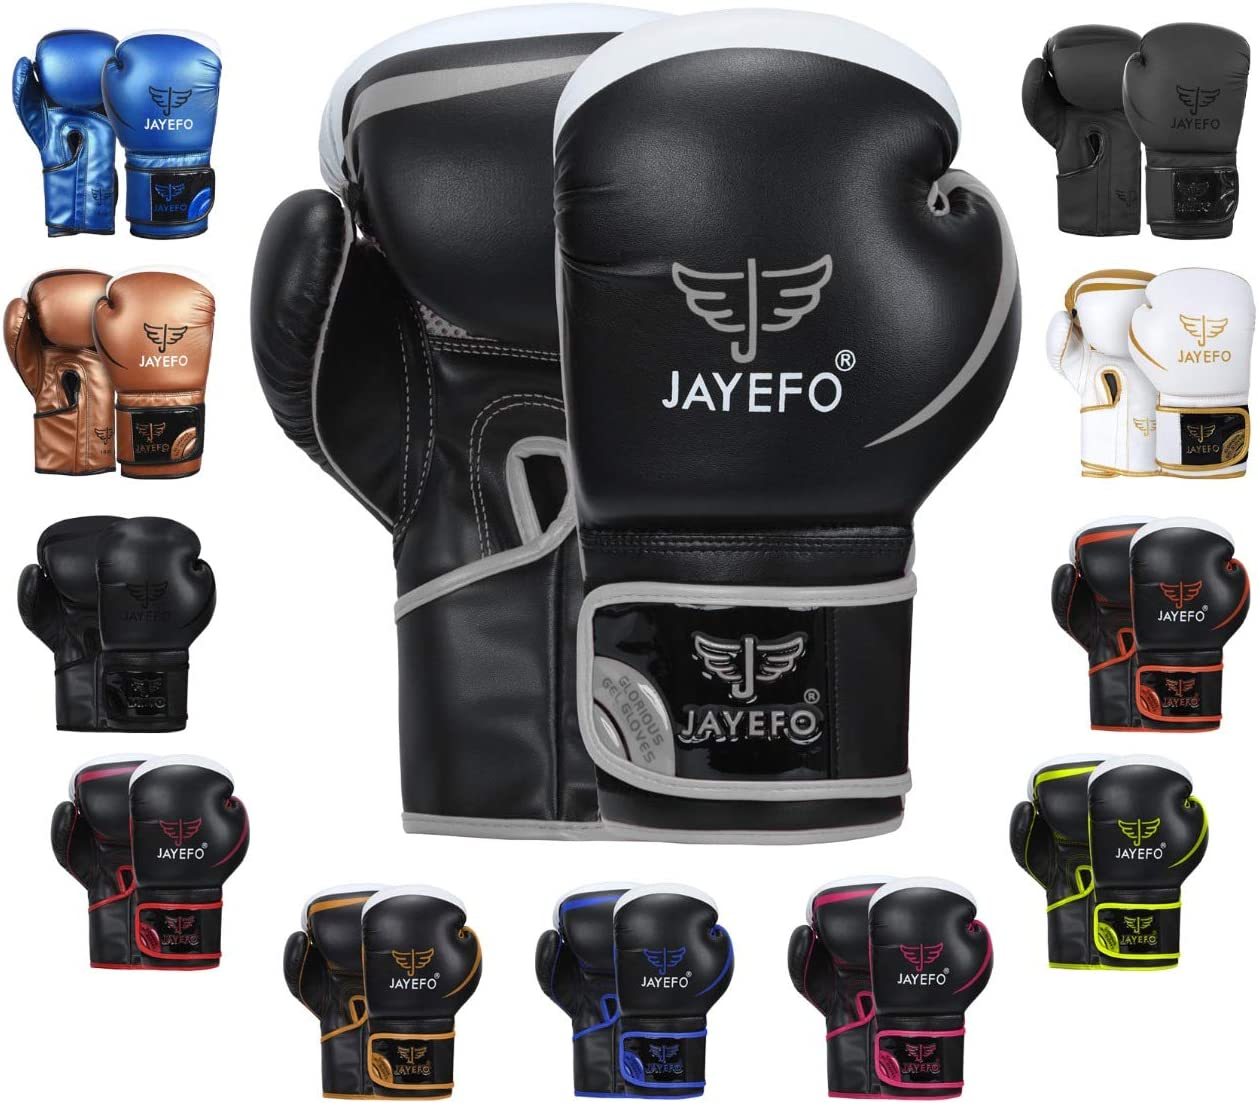 Jayefo Glorious Boxing Gloves Muay Thai Kick Boxing Leather Sparring Heavy Bag Workout MMA Pro Leather Gloves Mitts Work for Men & Women : Sports & Outdoors